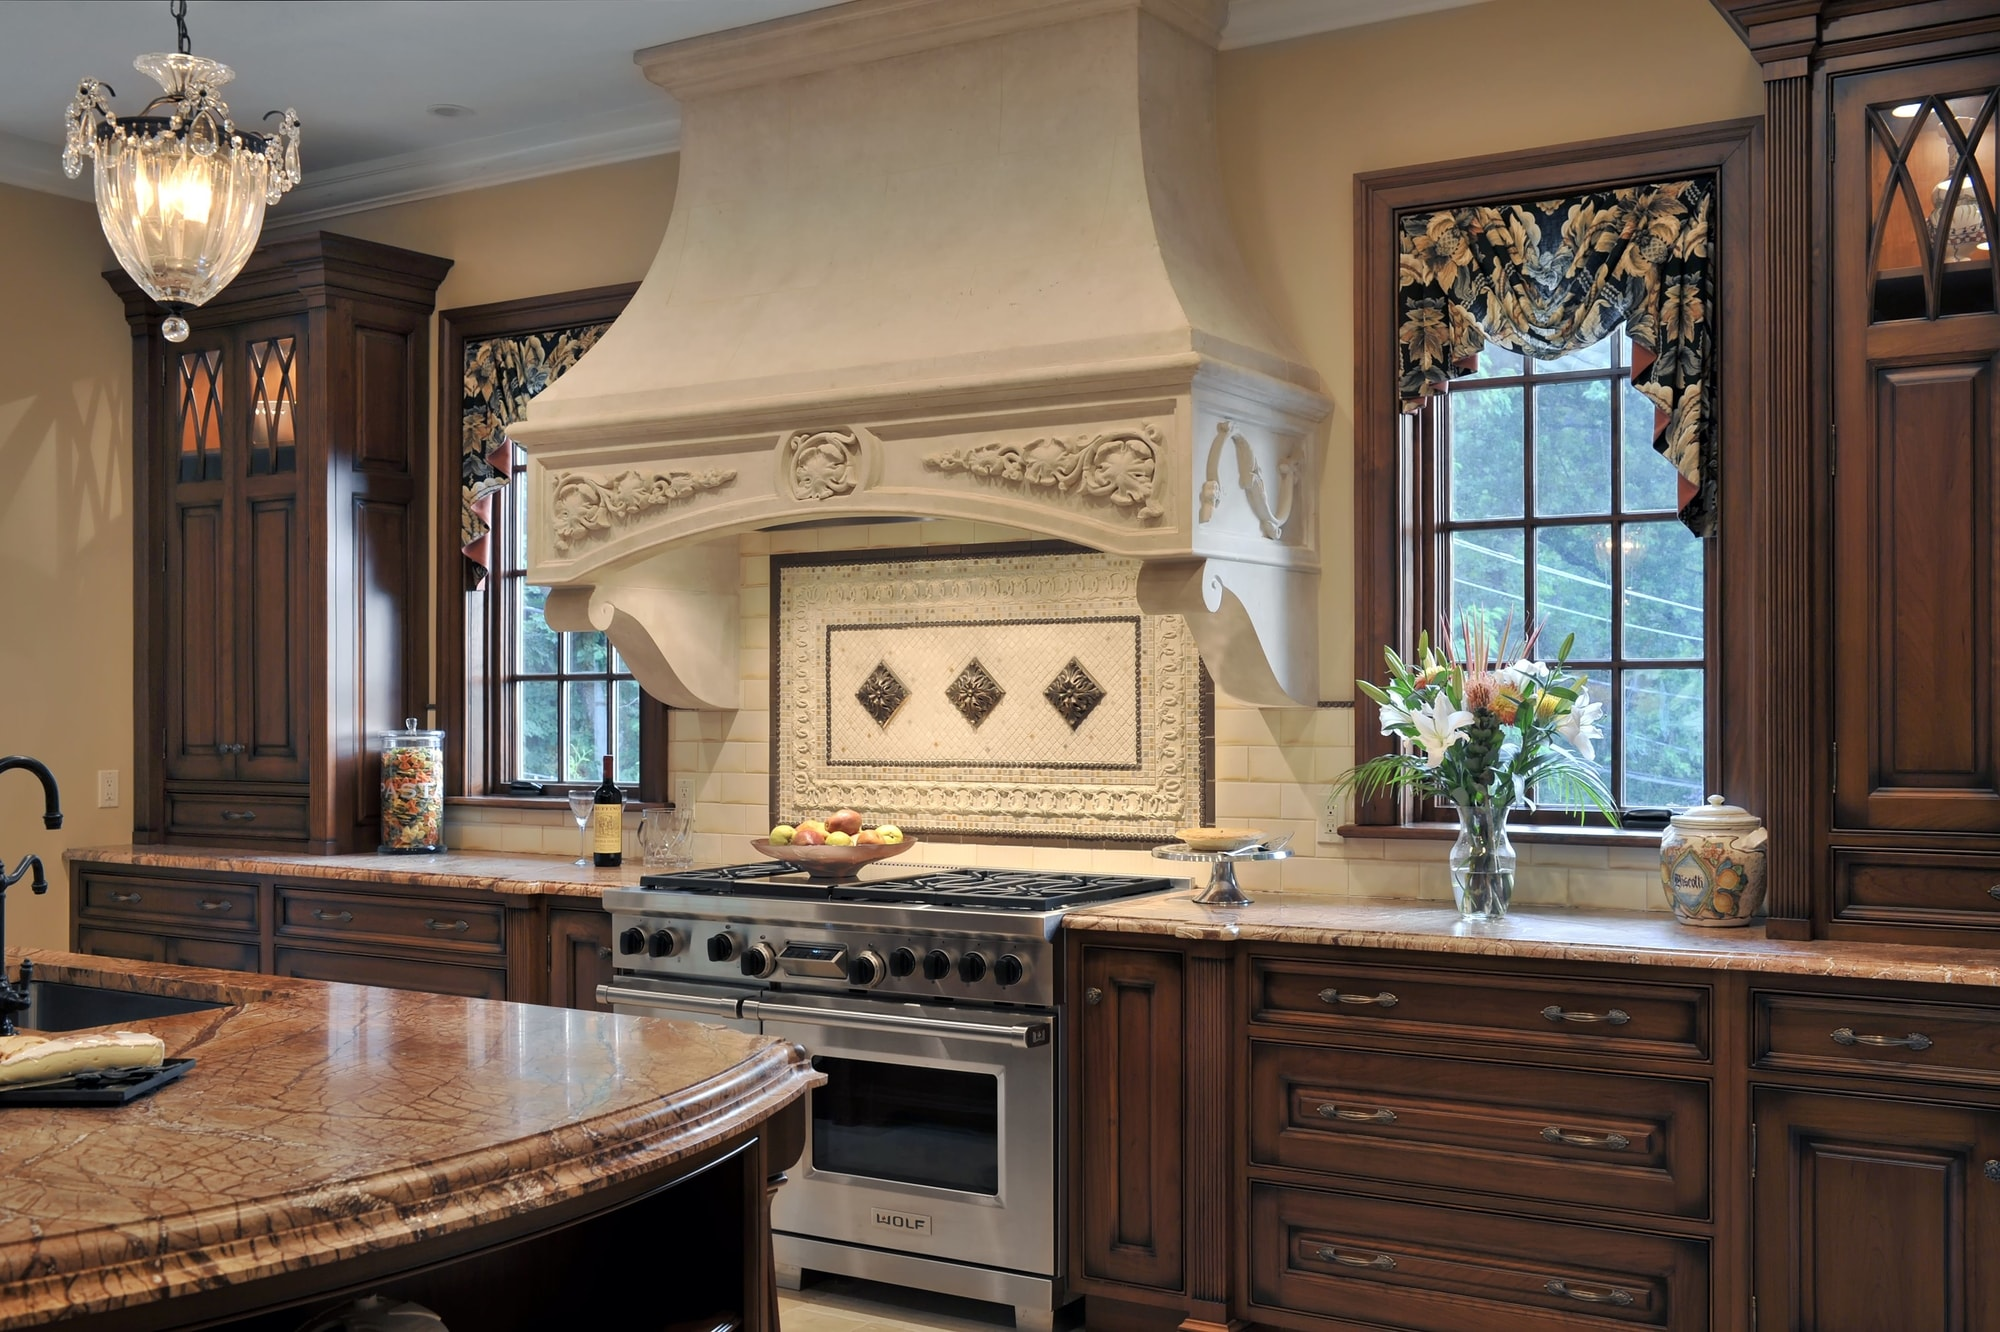 Traditional style kitchen with stylish backsplash